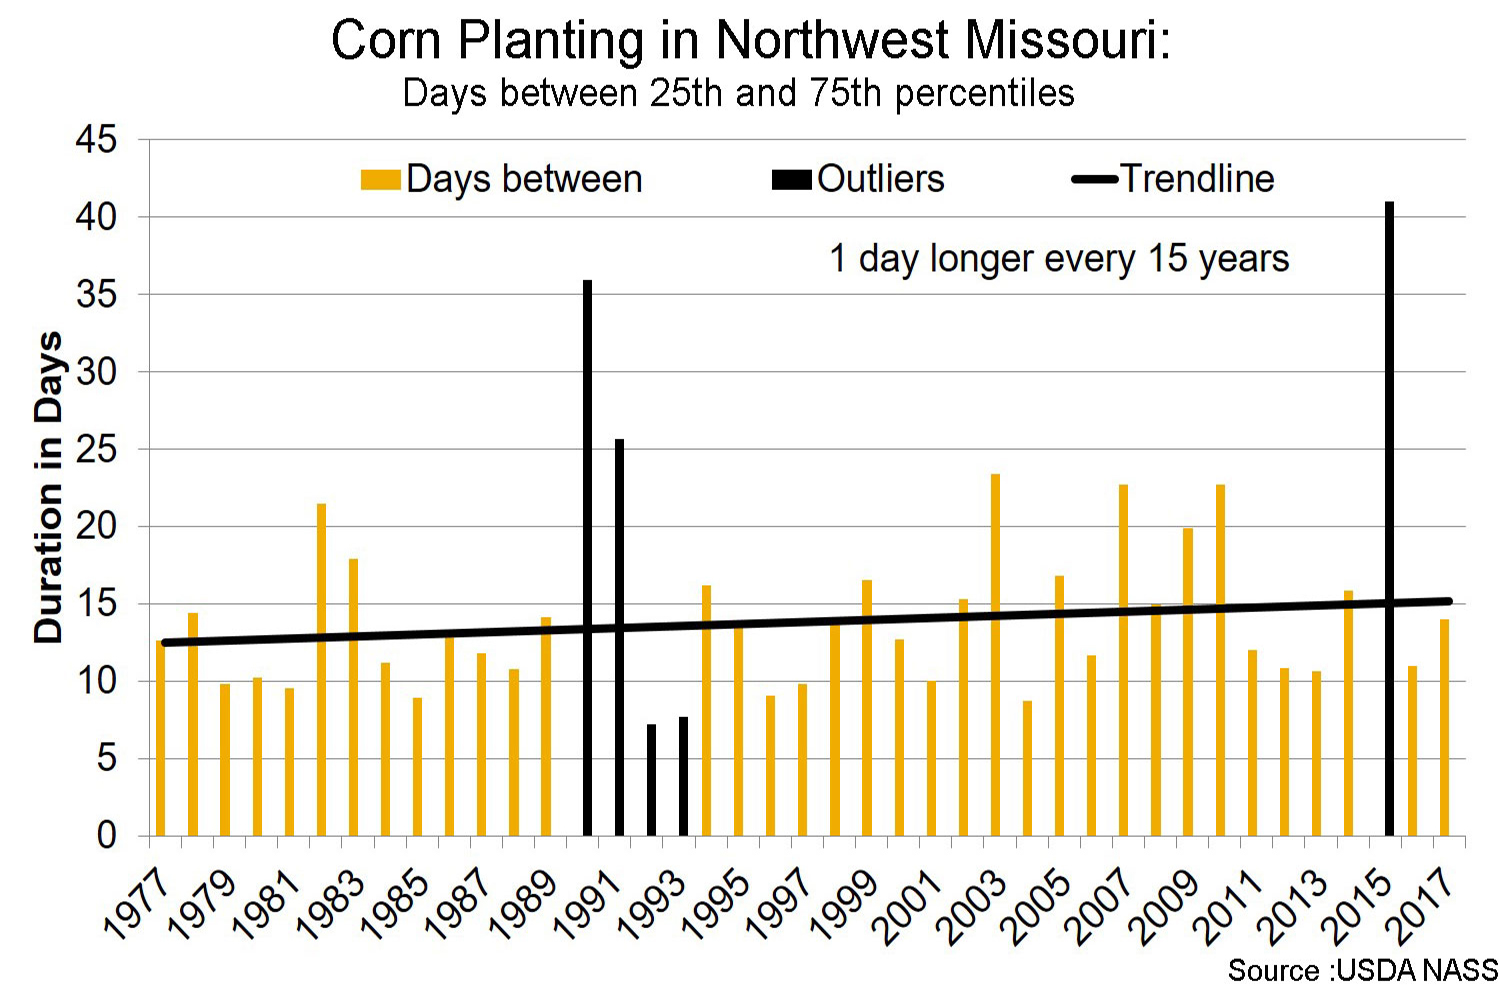 Corn planting in Northwest Missouri days between 25th and 75th percentiles chart